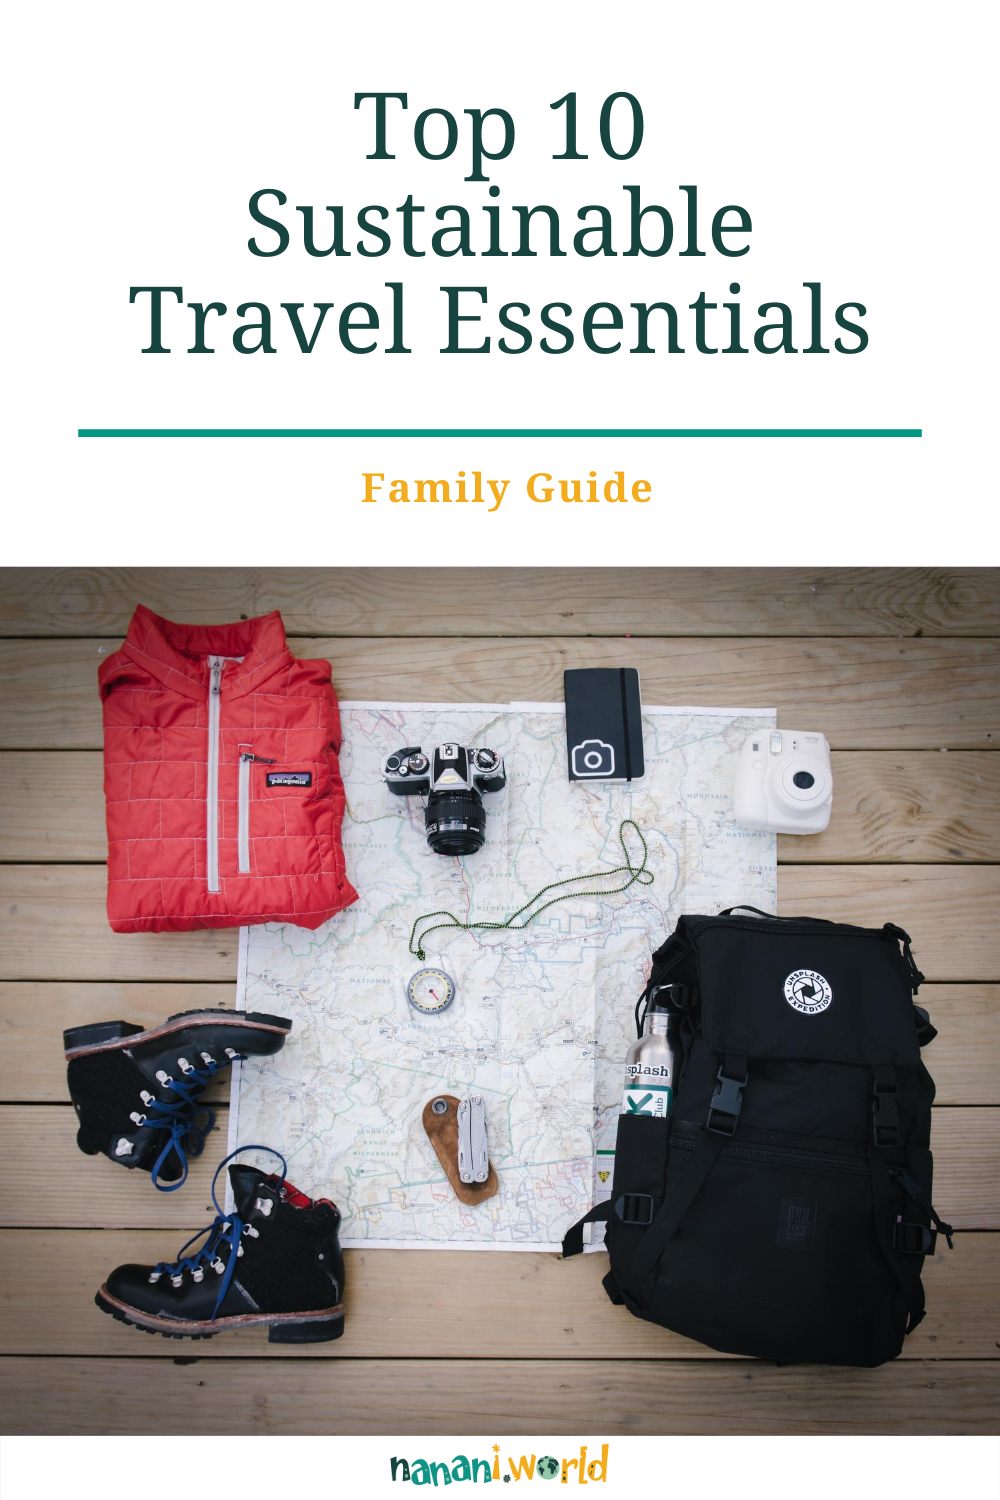 Top 10 Sustainable Travel Essentials for Family